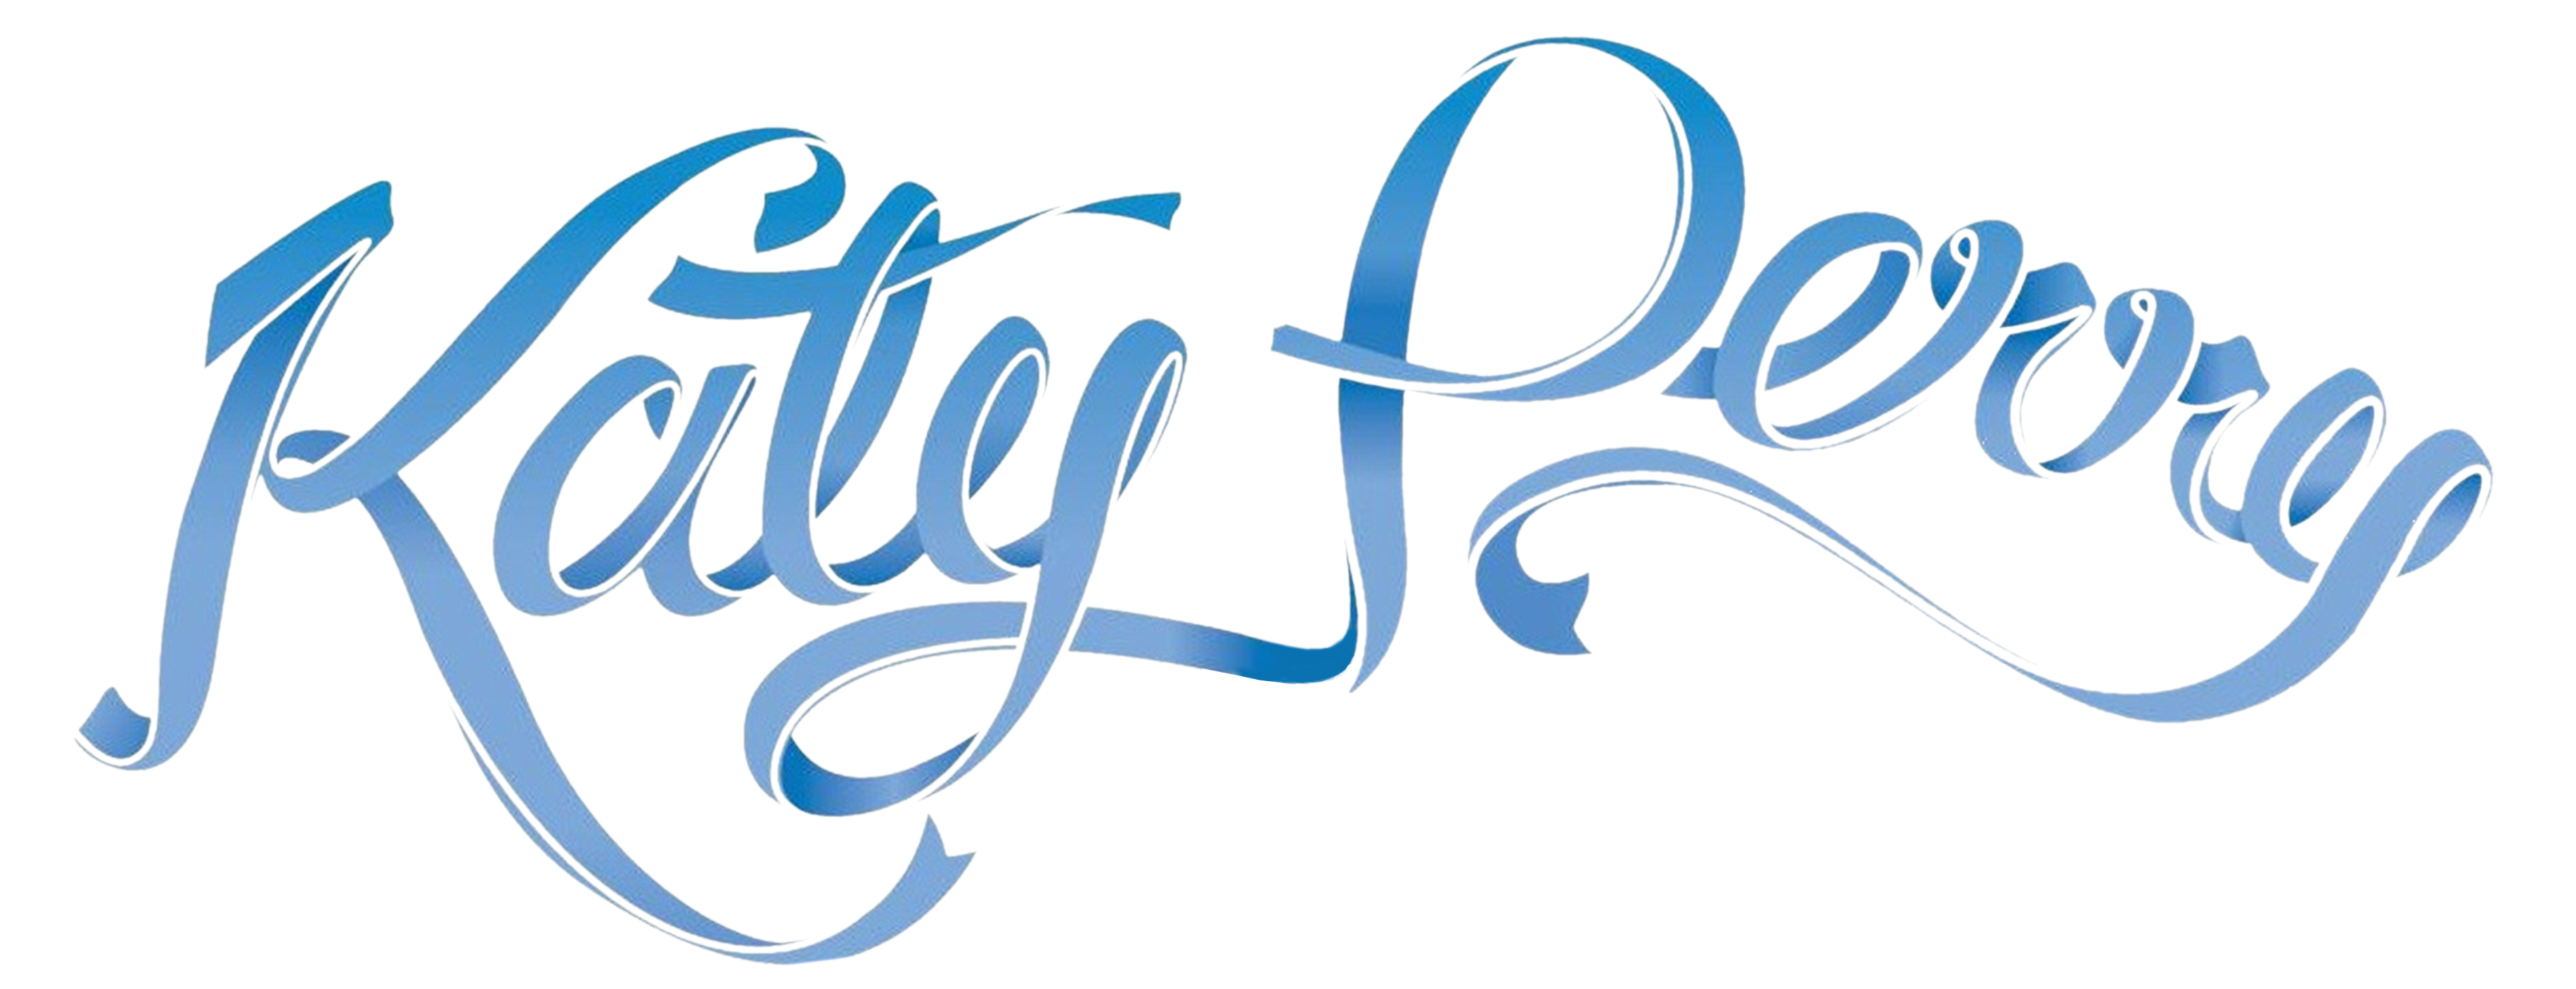 Katy perry prism logo png